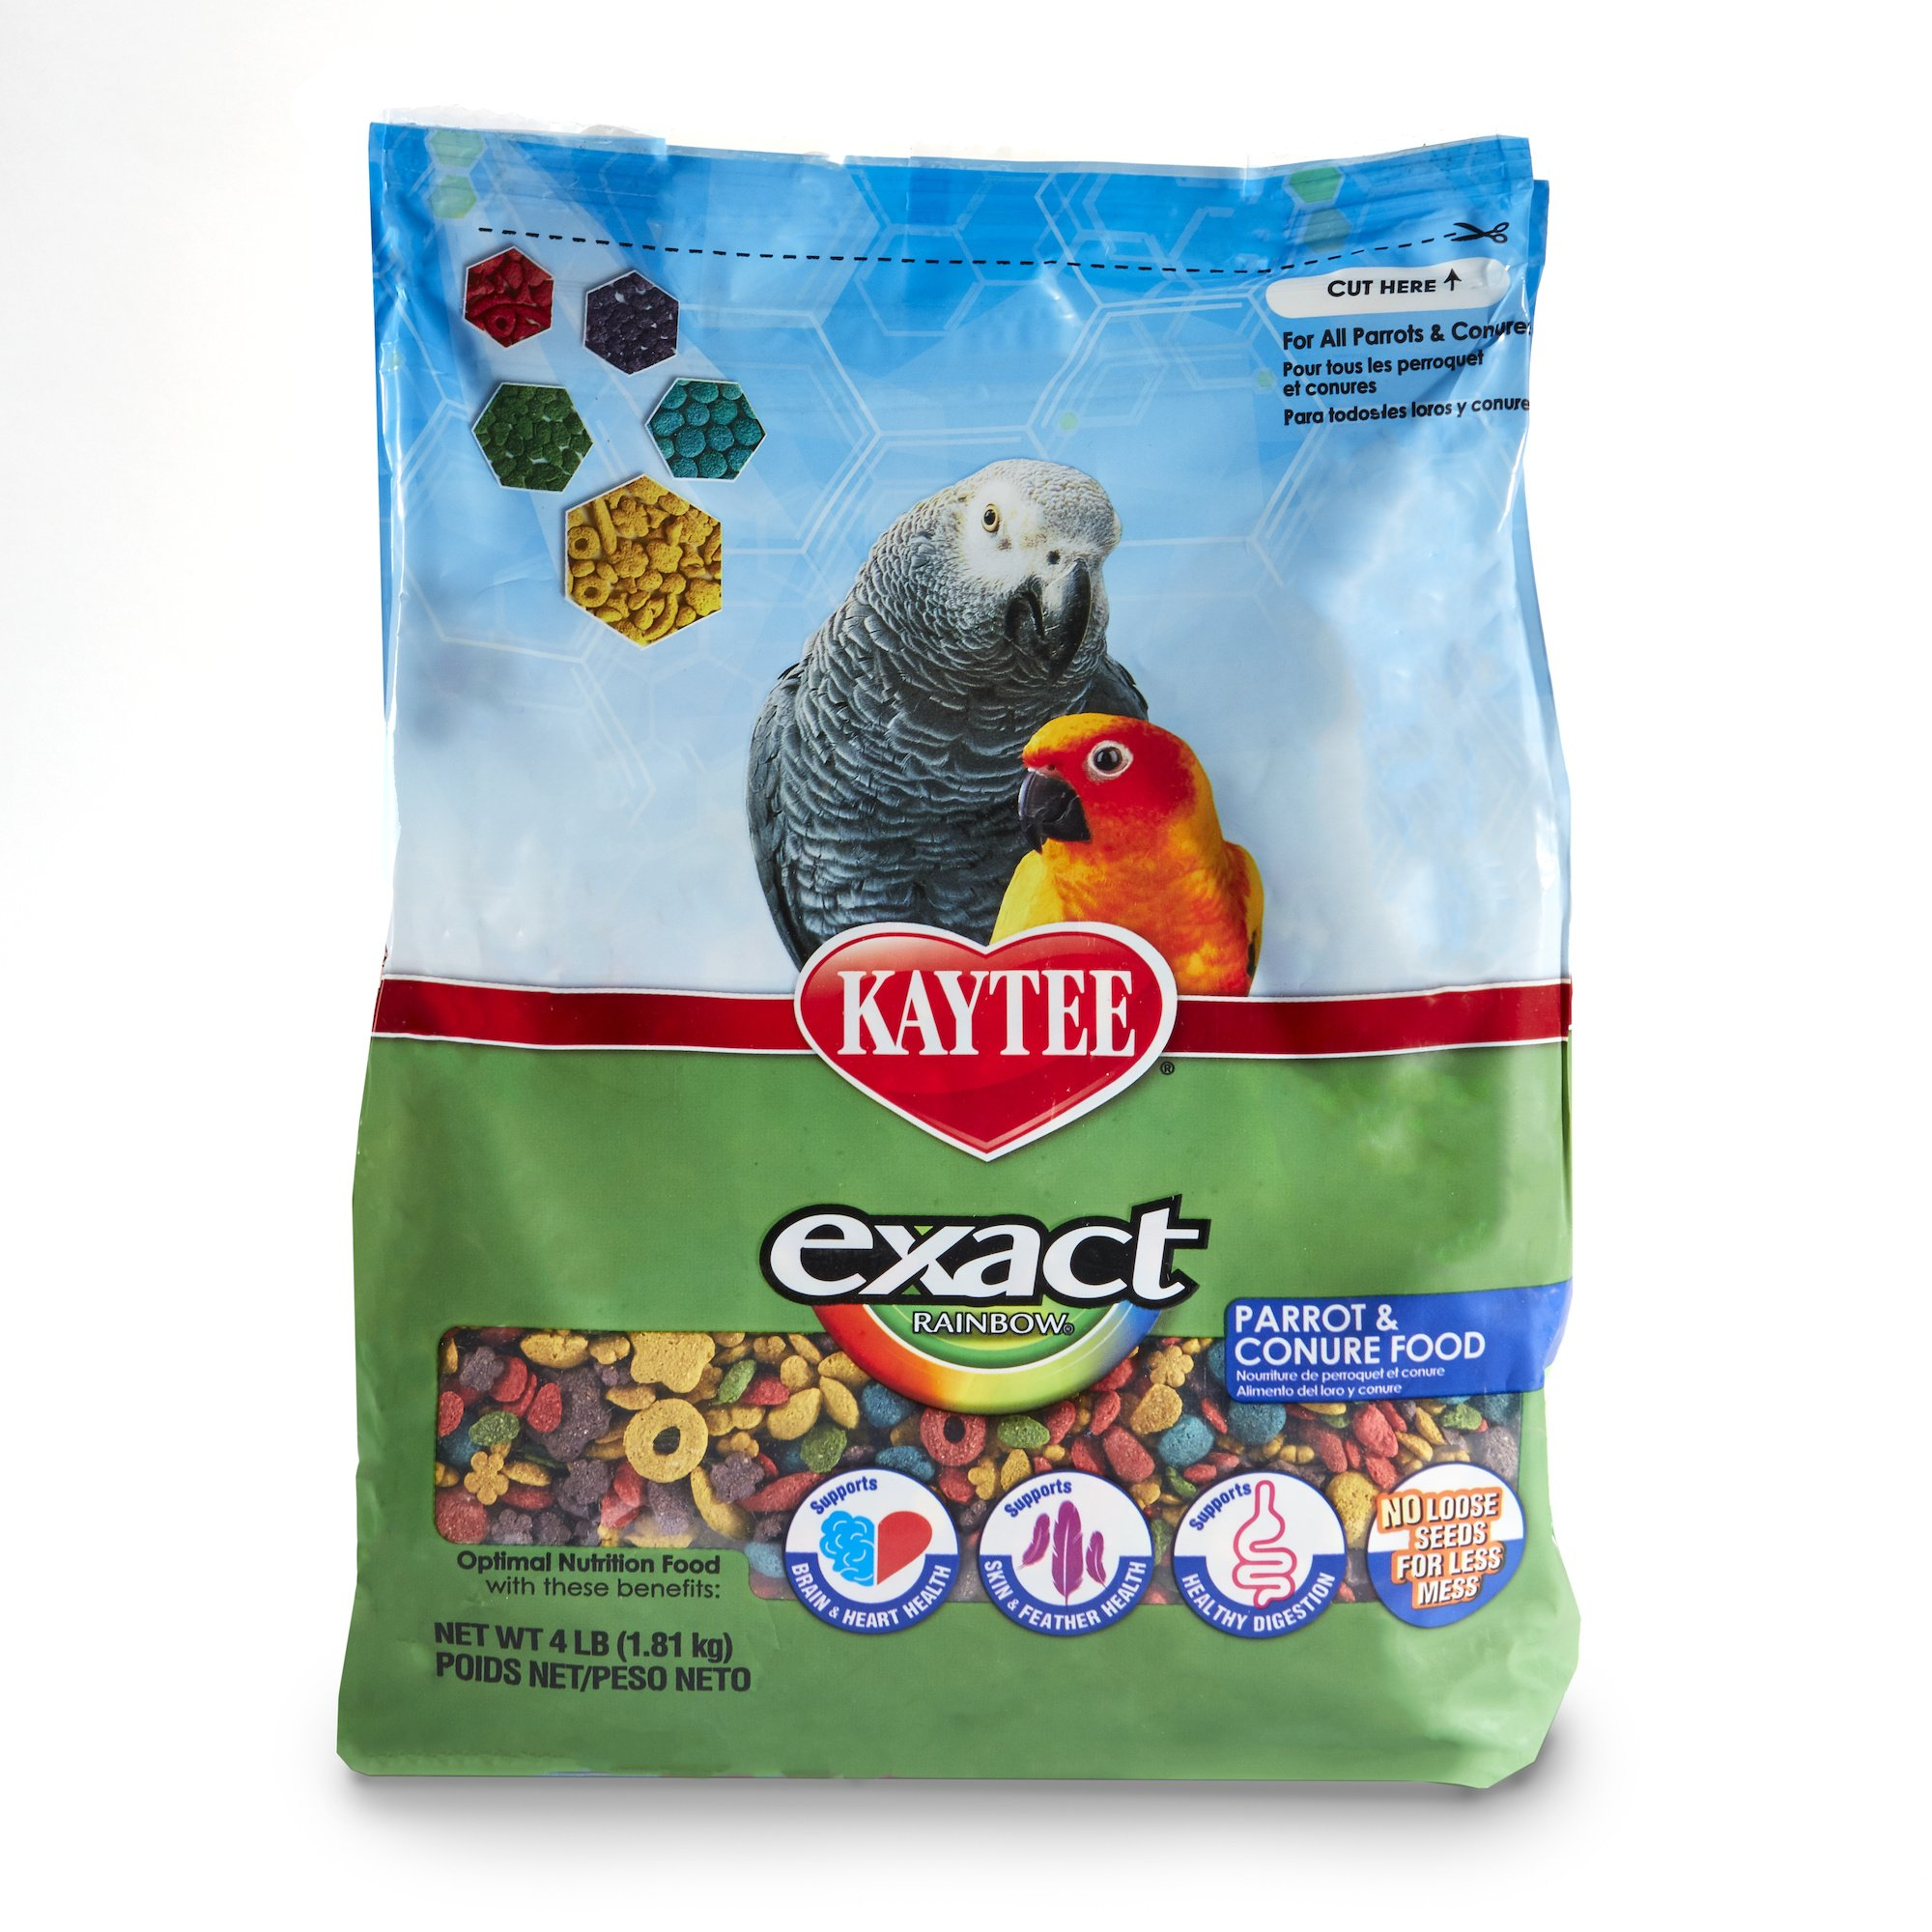 Kaytee Exact Rainbow Premium Daily Nutrition for Parrots and Conures, 4-Pound Bag by Kaytee